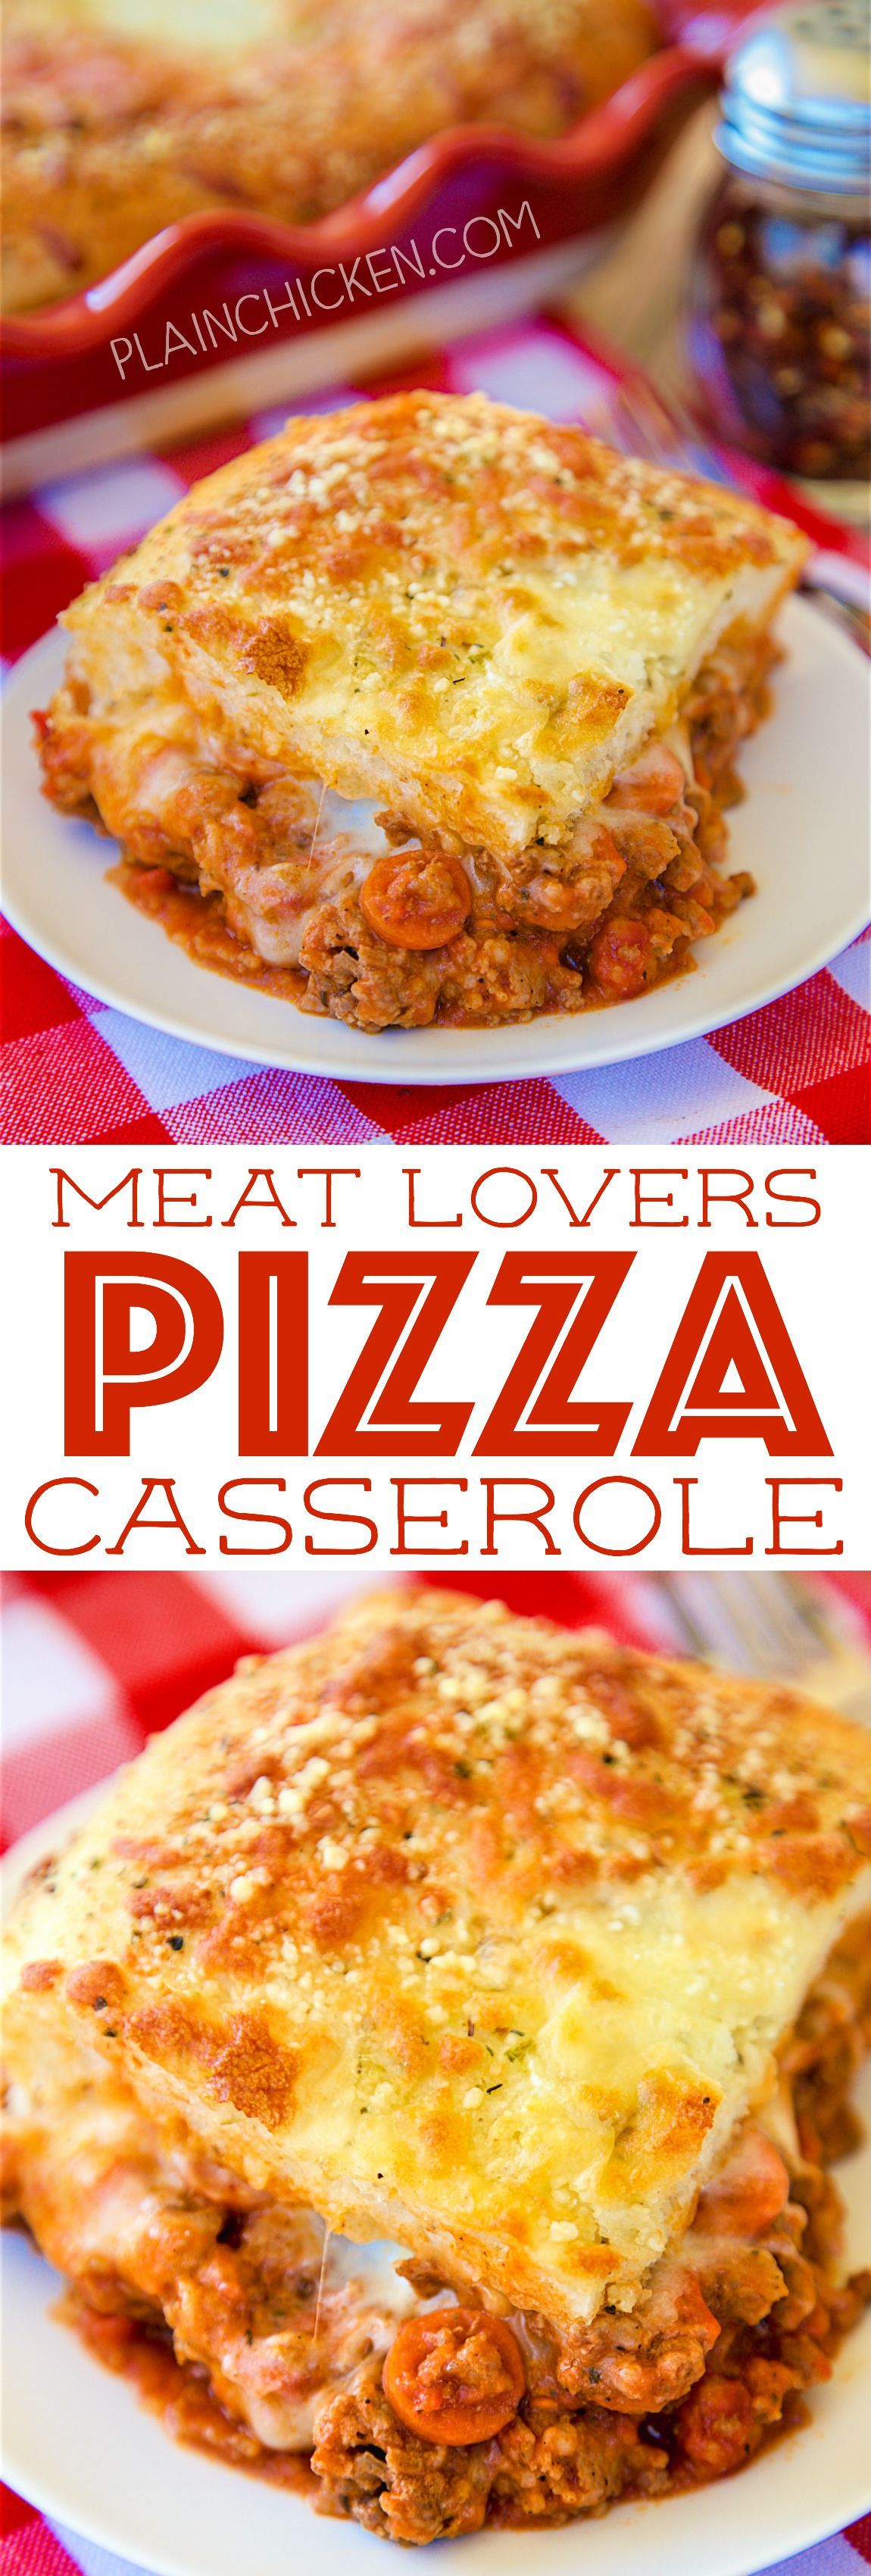 Meat Lovers Pizza Casserole A Family Favorite Lean Ground Beef Sausage Pepperoni Pasta Sauce Mozzarella Chee Meat Lovers Pizza Pizza Casserole Recipes